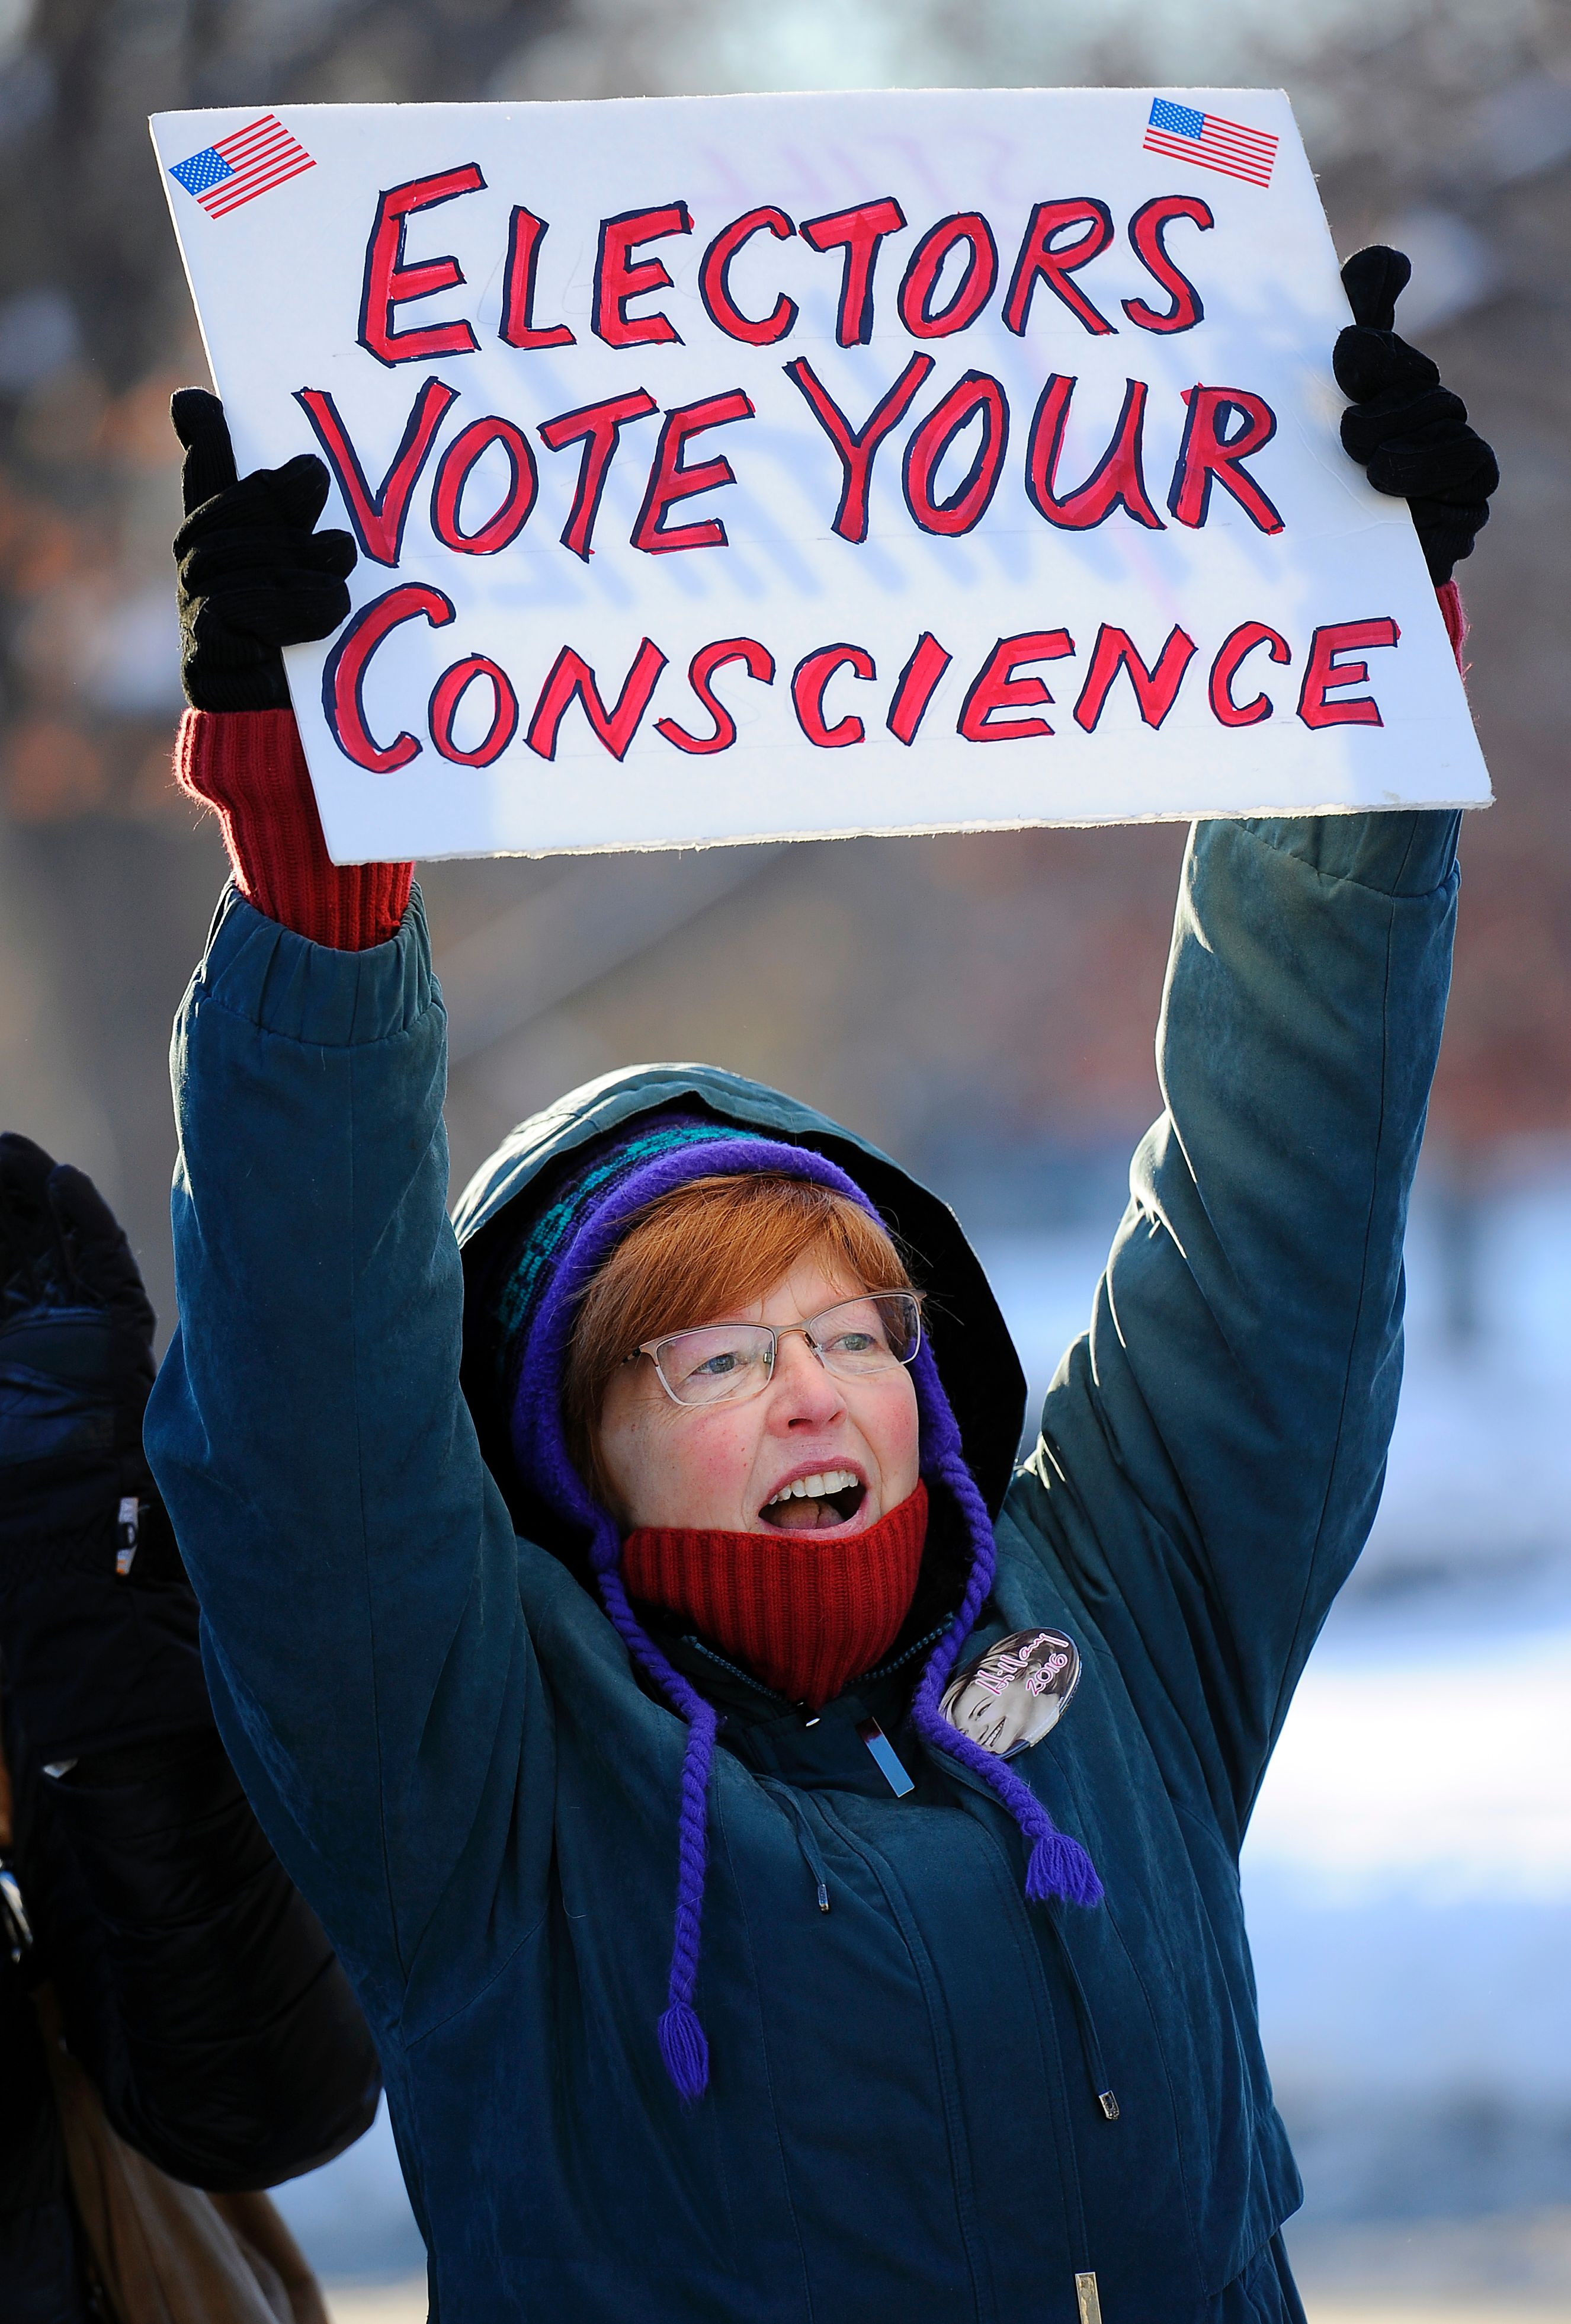 Gloria McVeigh, 65, holds a sign and cheers during a demonstration against US President-elect Donald Trump on the eve of the Electoral College vote, in Denver, Colorado on December 18, 2016. AFP—AFP/Getty Images